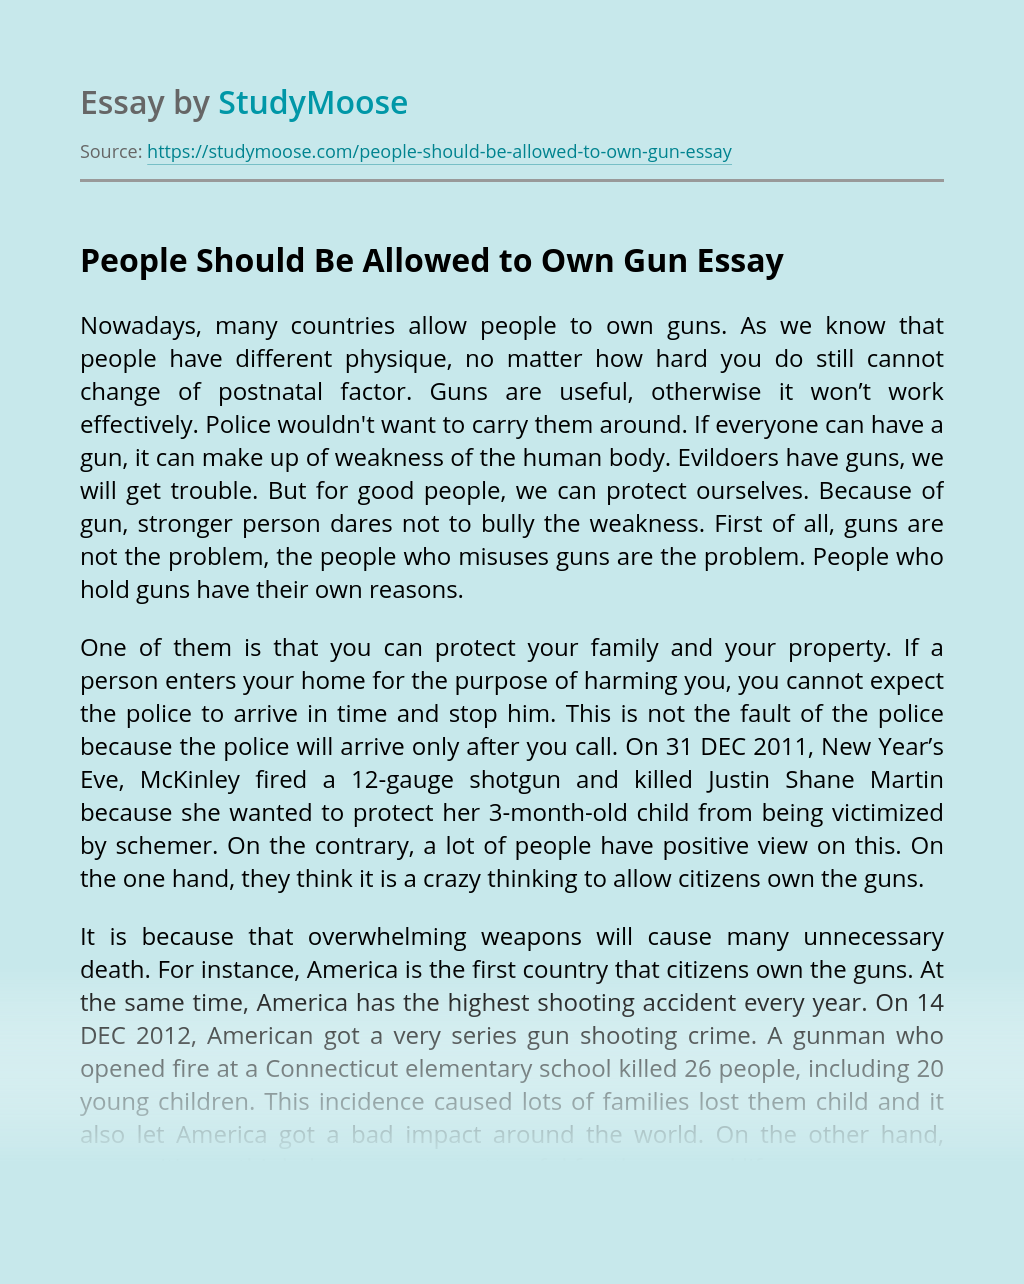 People Should Be Allowed to Own Gun